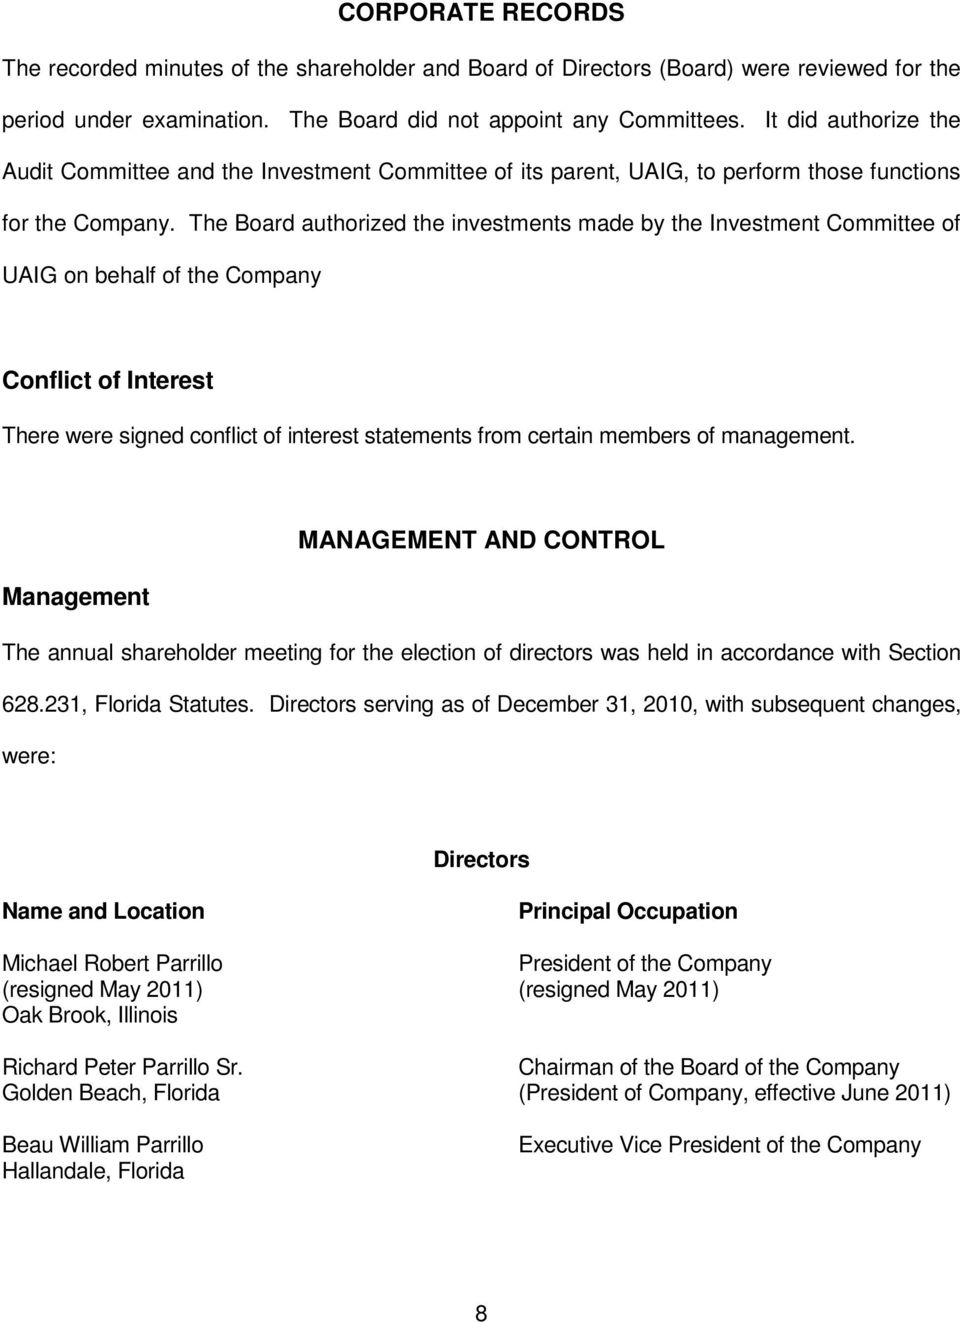 The Board authorized the investments made by the Investment Committee of UAIG on behalf of the Company Conflict of Interest There were signed conflict of interest statements from certain members of